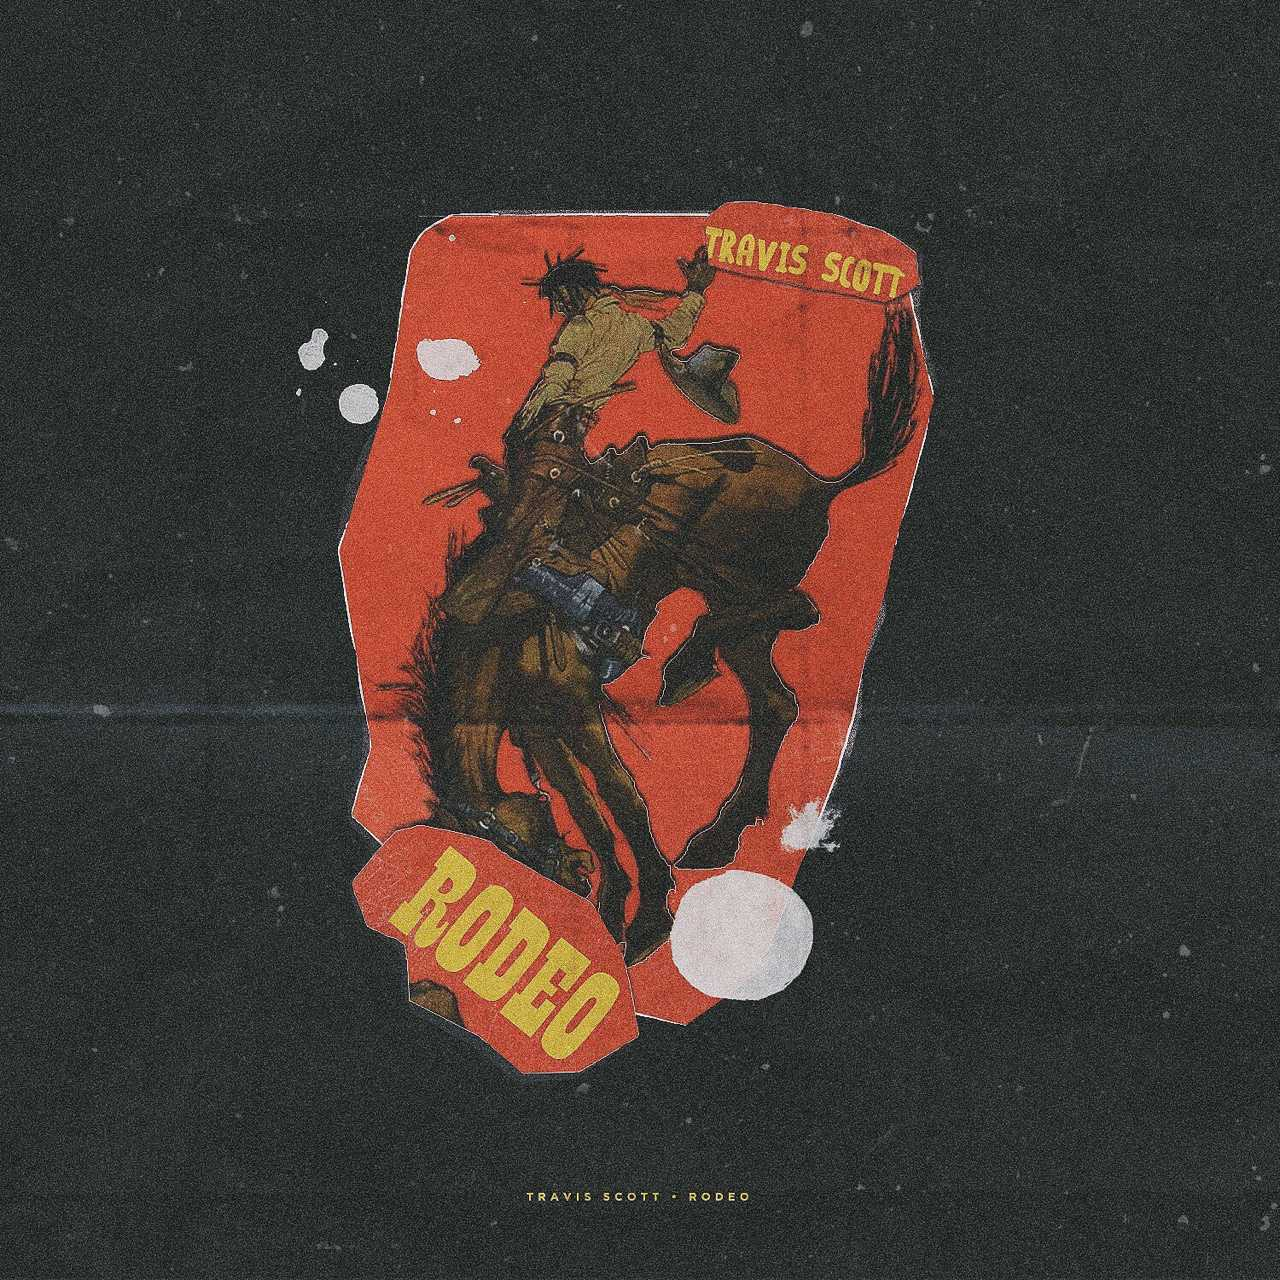 download travis scott rodeo album mp3